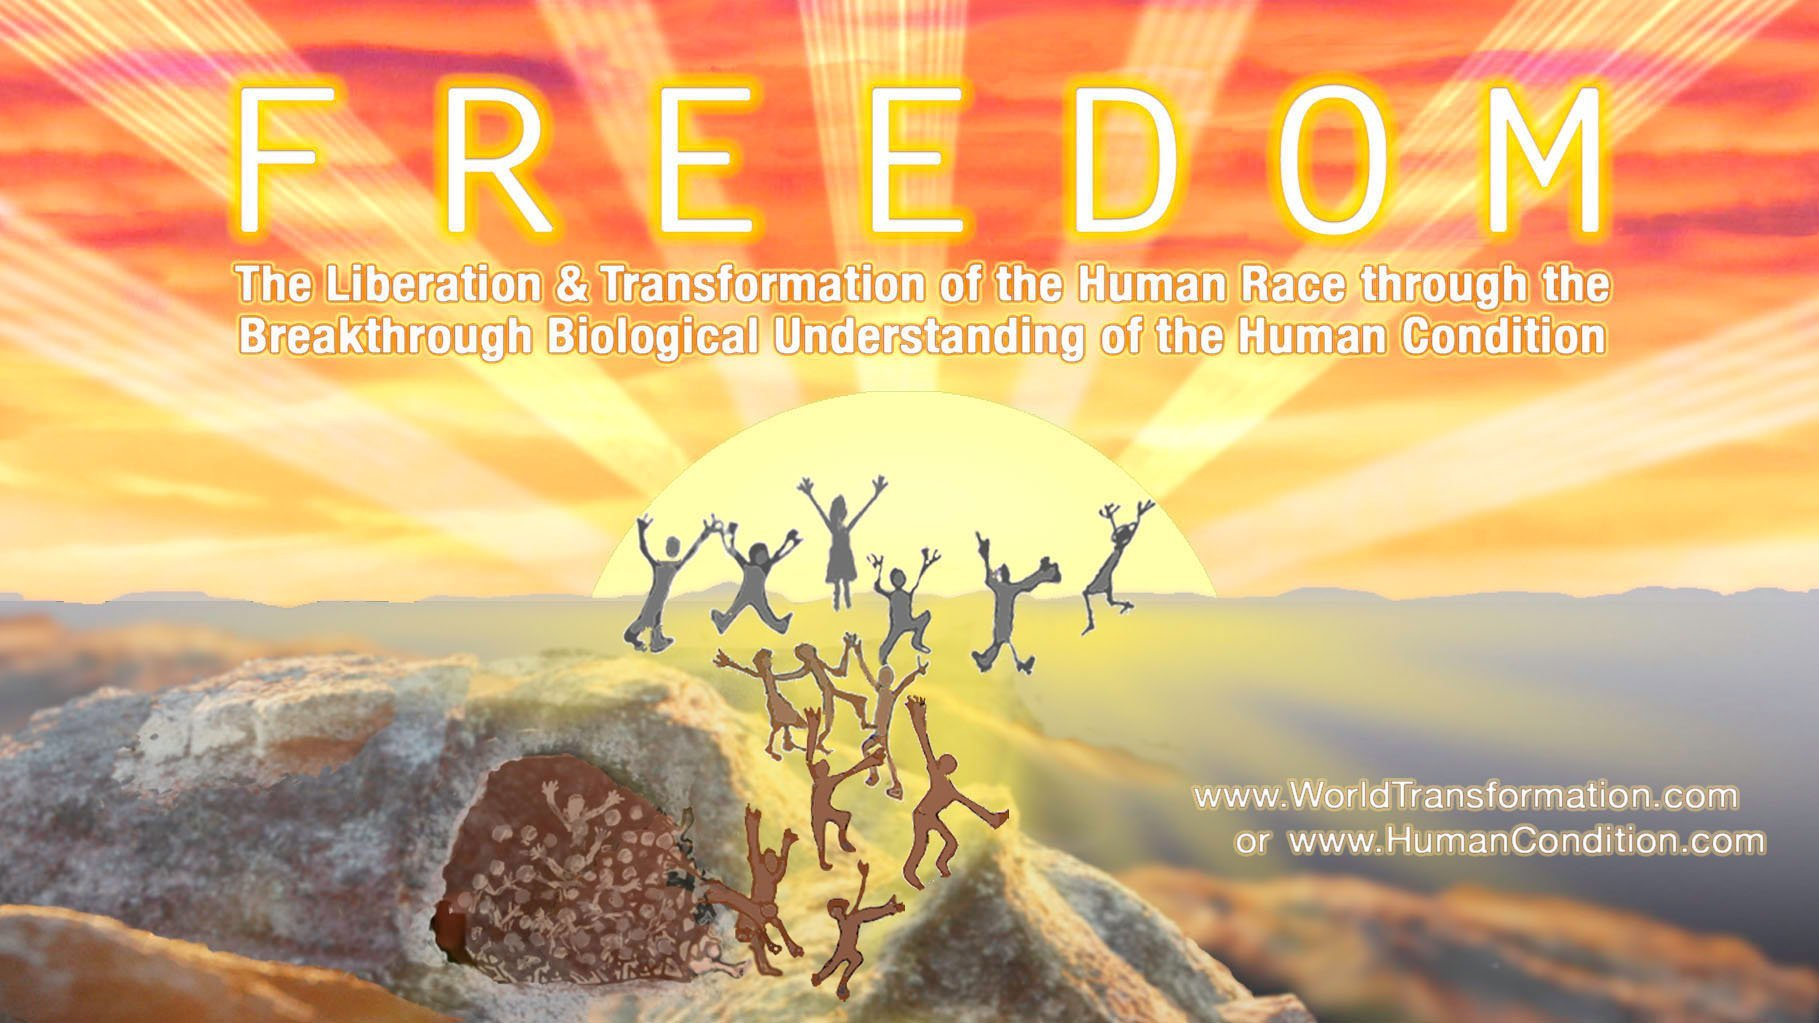 The WTM's FREEDOM poster showing people running out of a dark cave towards a radiant sunrise